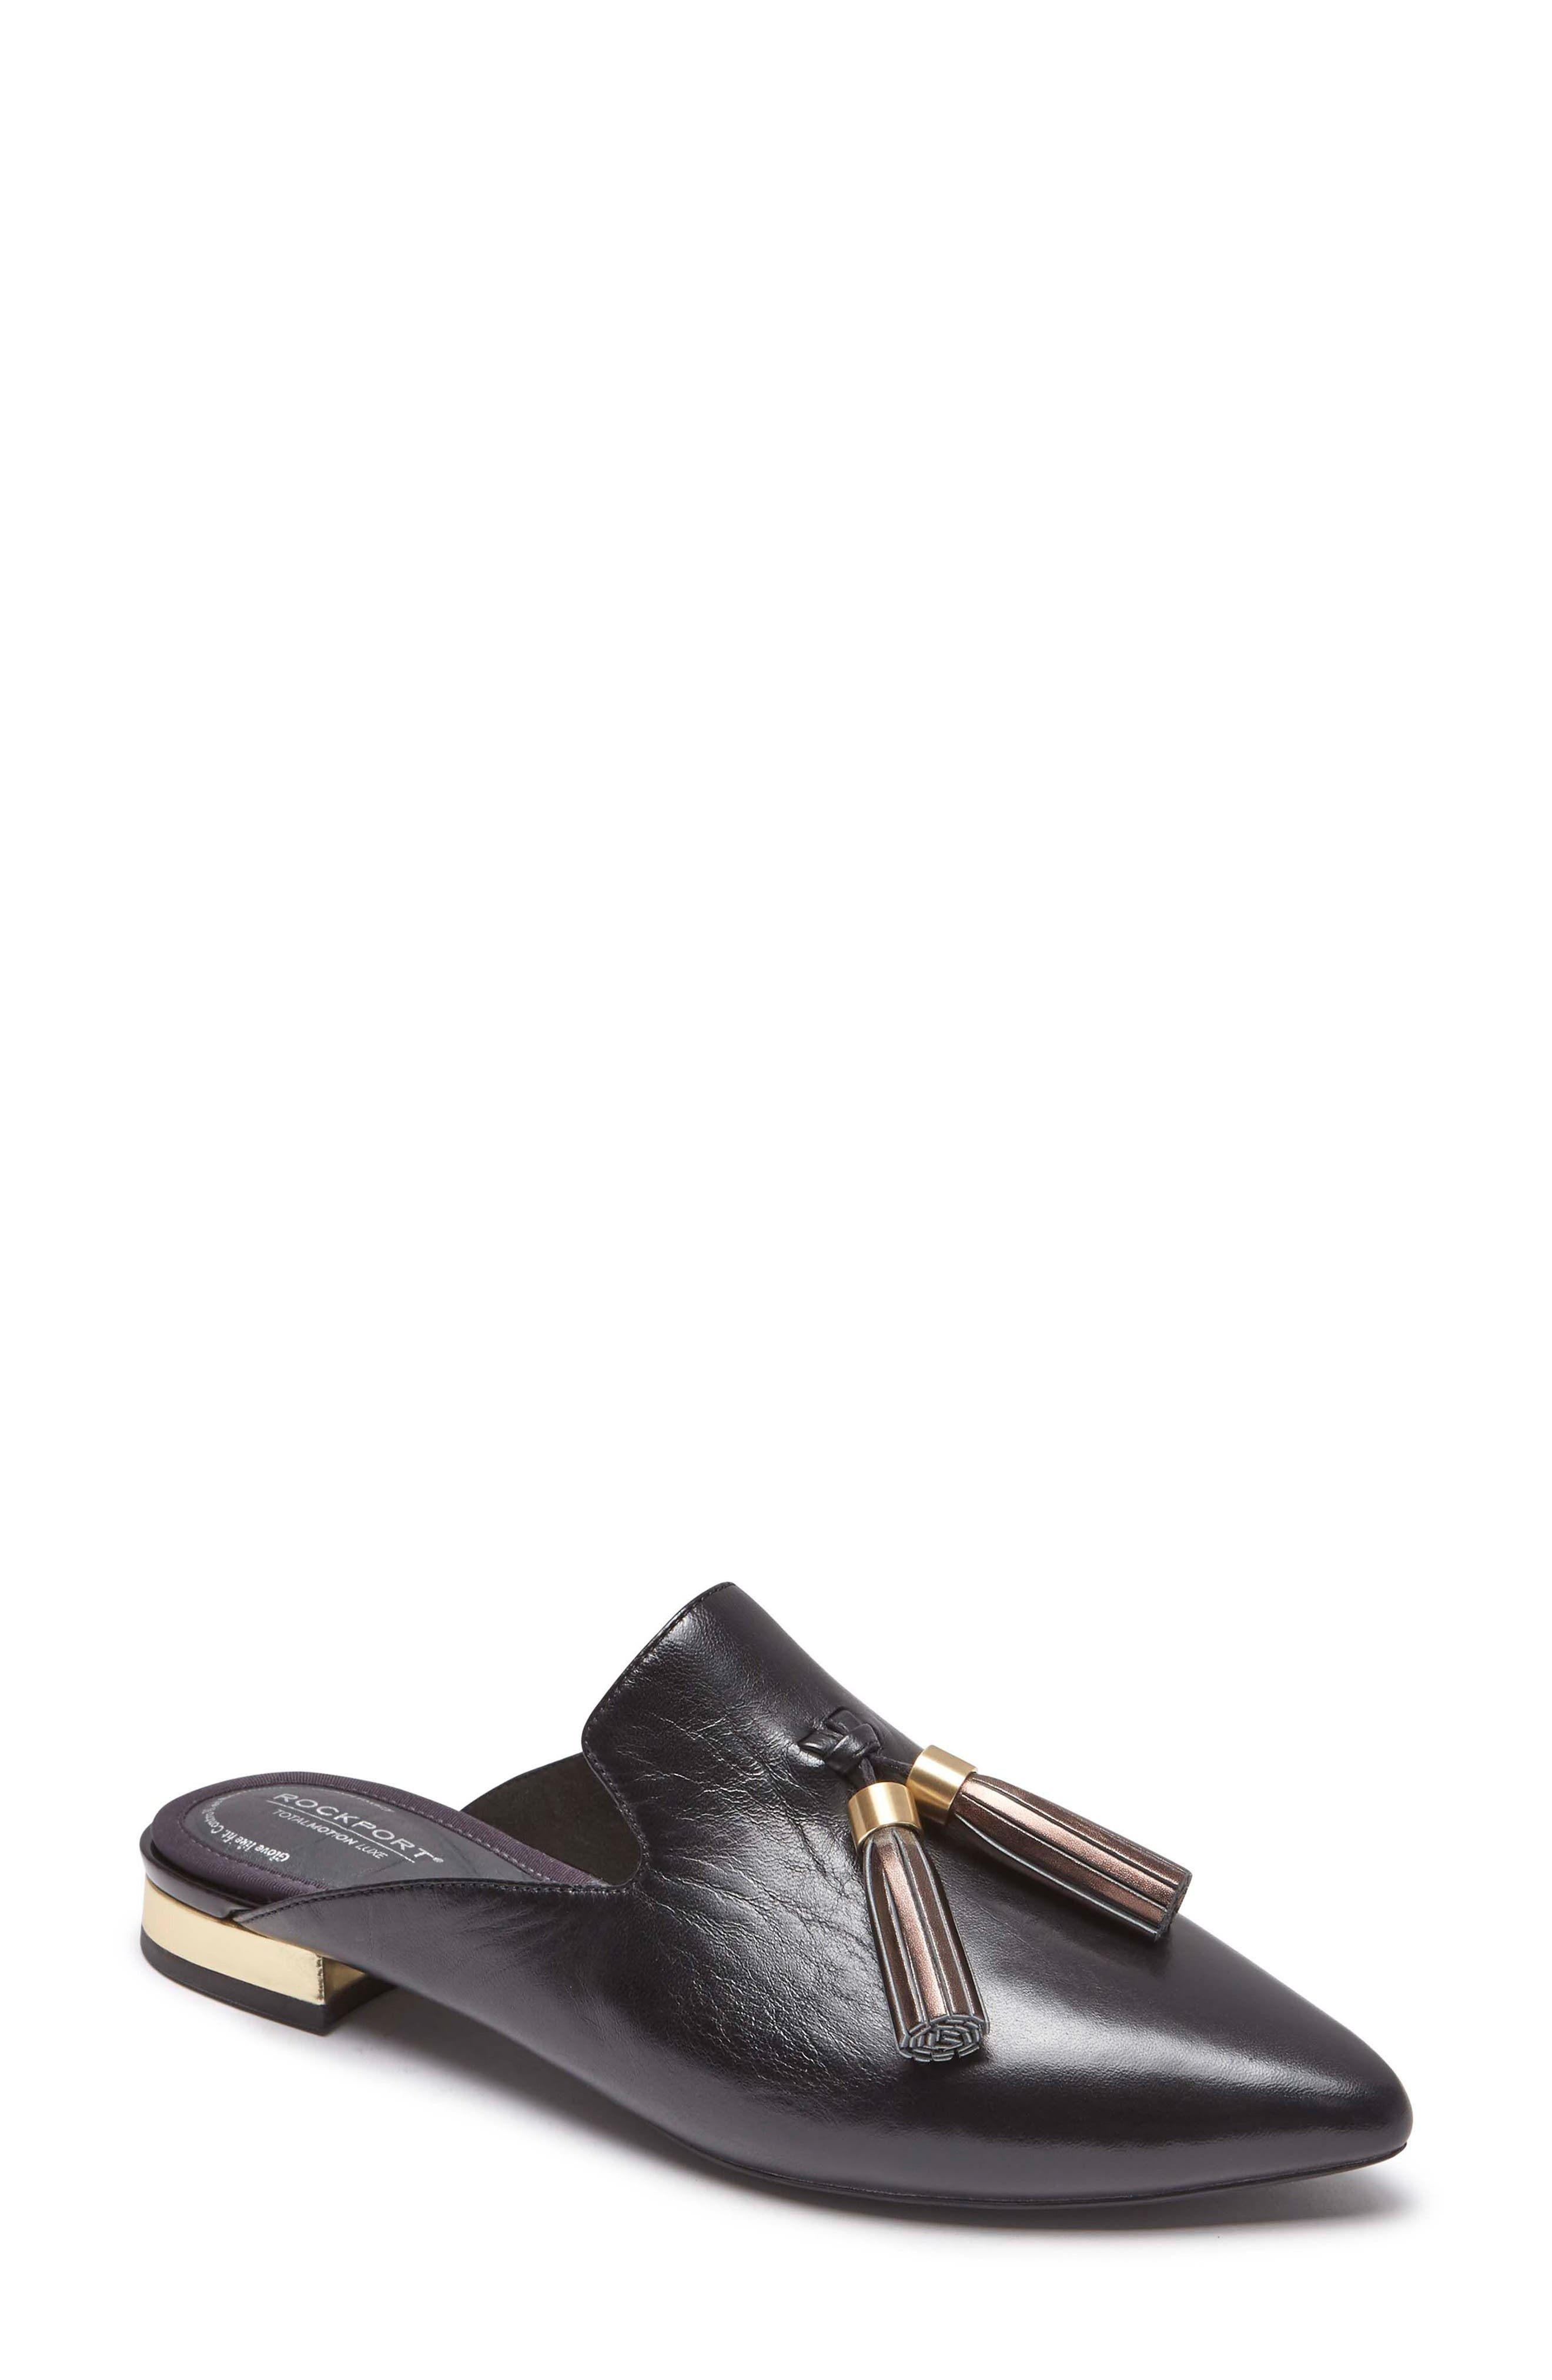 ROCKPORT, Total Motion Zuly Tassel Mule, Main thumbnail 1, color, BLACK LEATHER